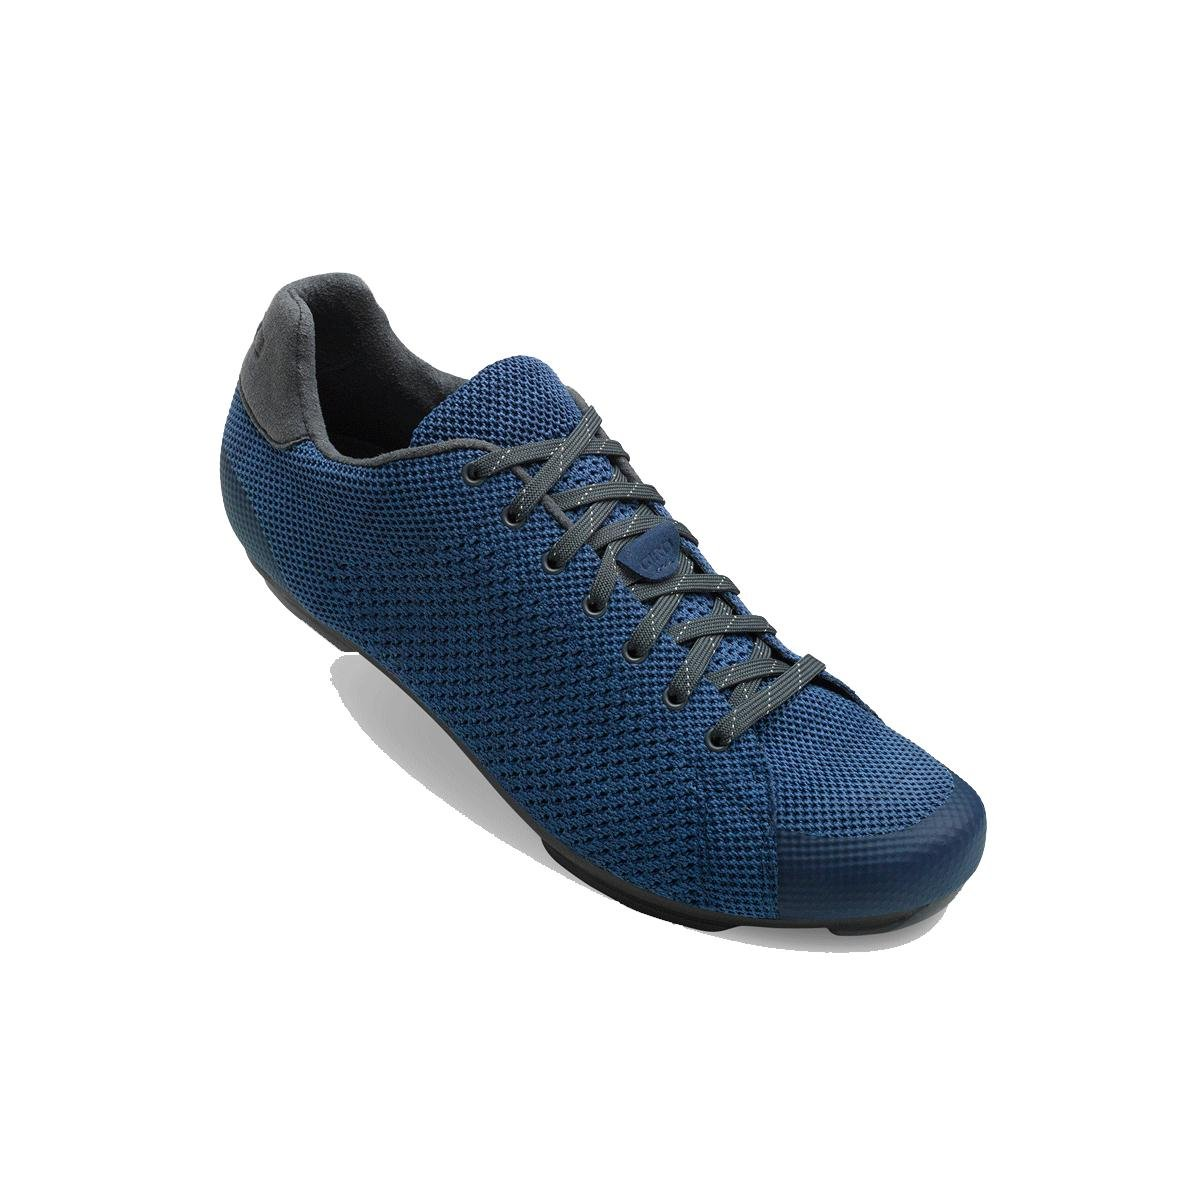 Giro Republic Reflectiveニットサイクリング靴 – Men 's B075RT62G6 43 M EU|Midnight/Blue Heather Midnight/Blue Heather 43 M EU